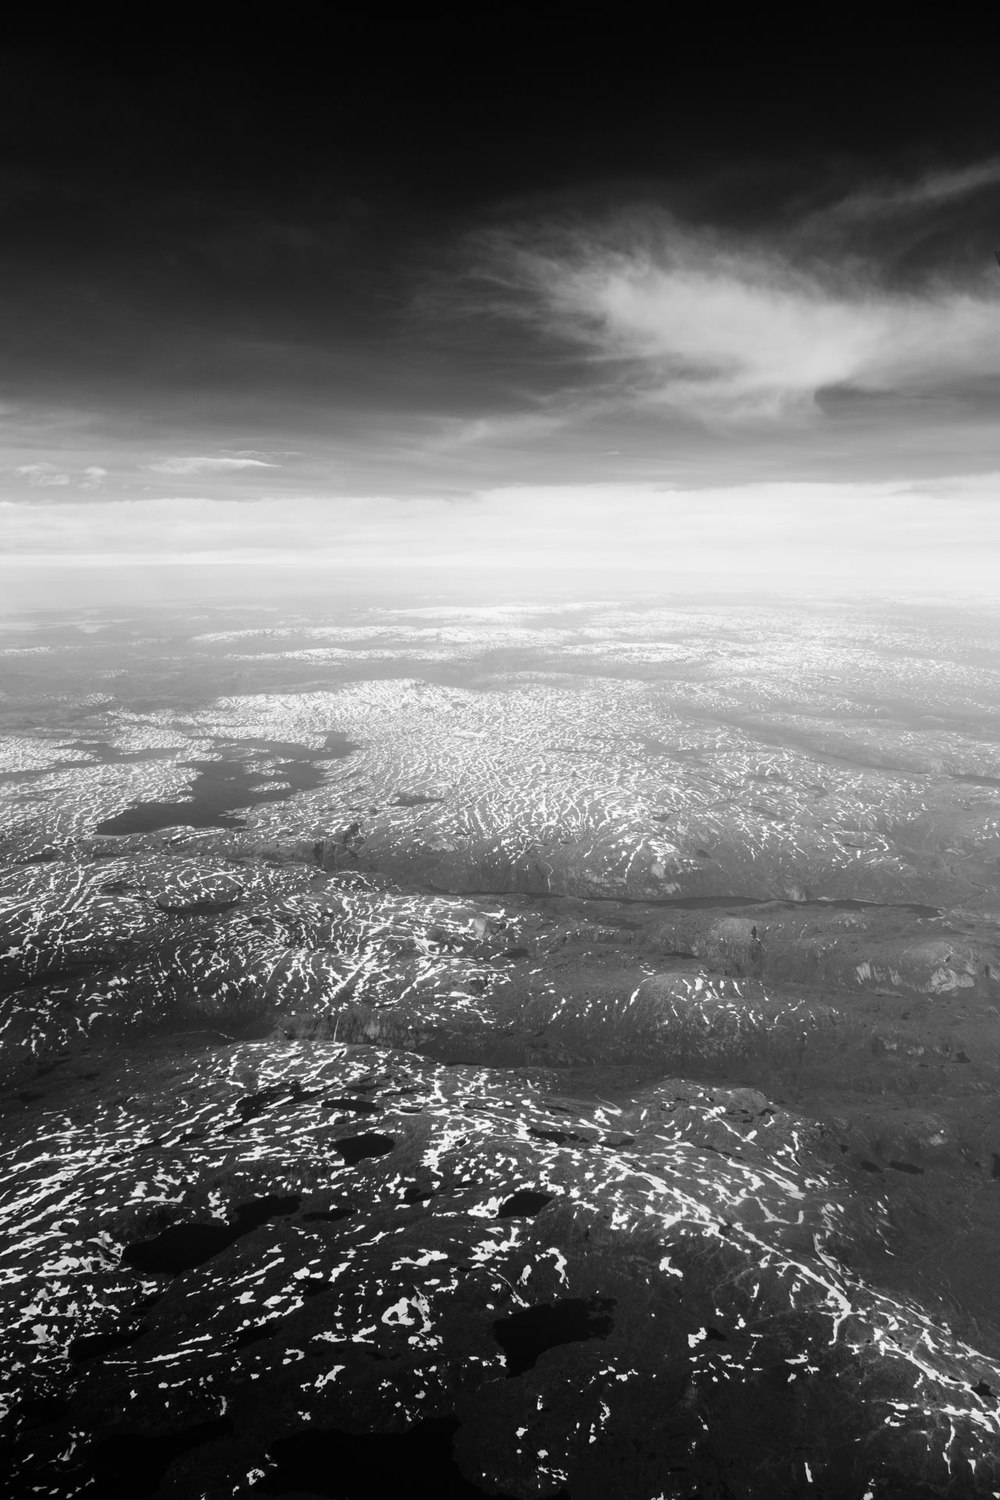 Flying over snow-patched Norwegian mountains as we approach Oslo.